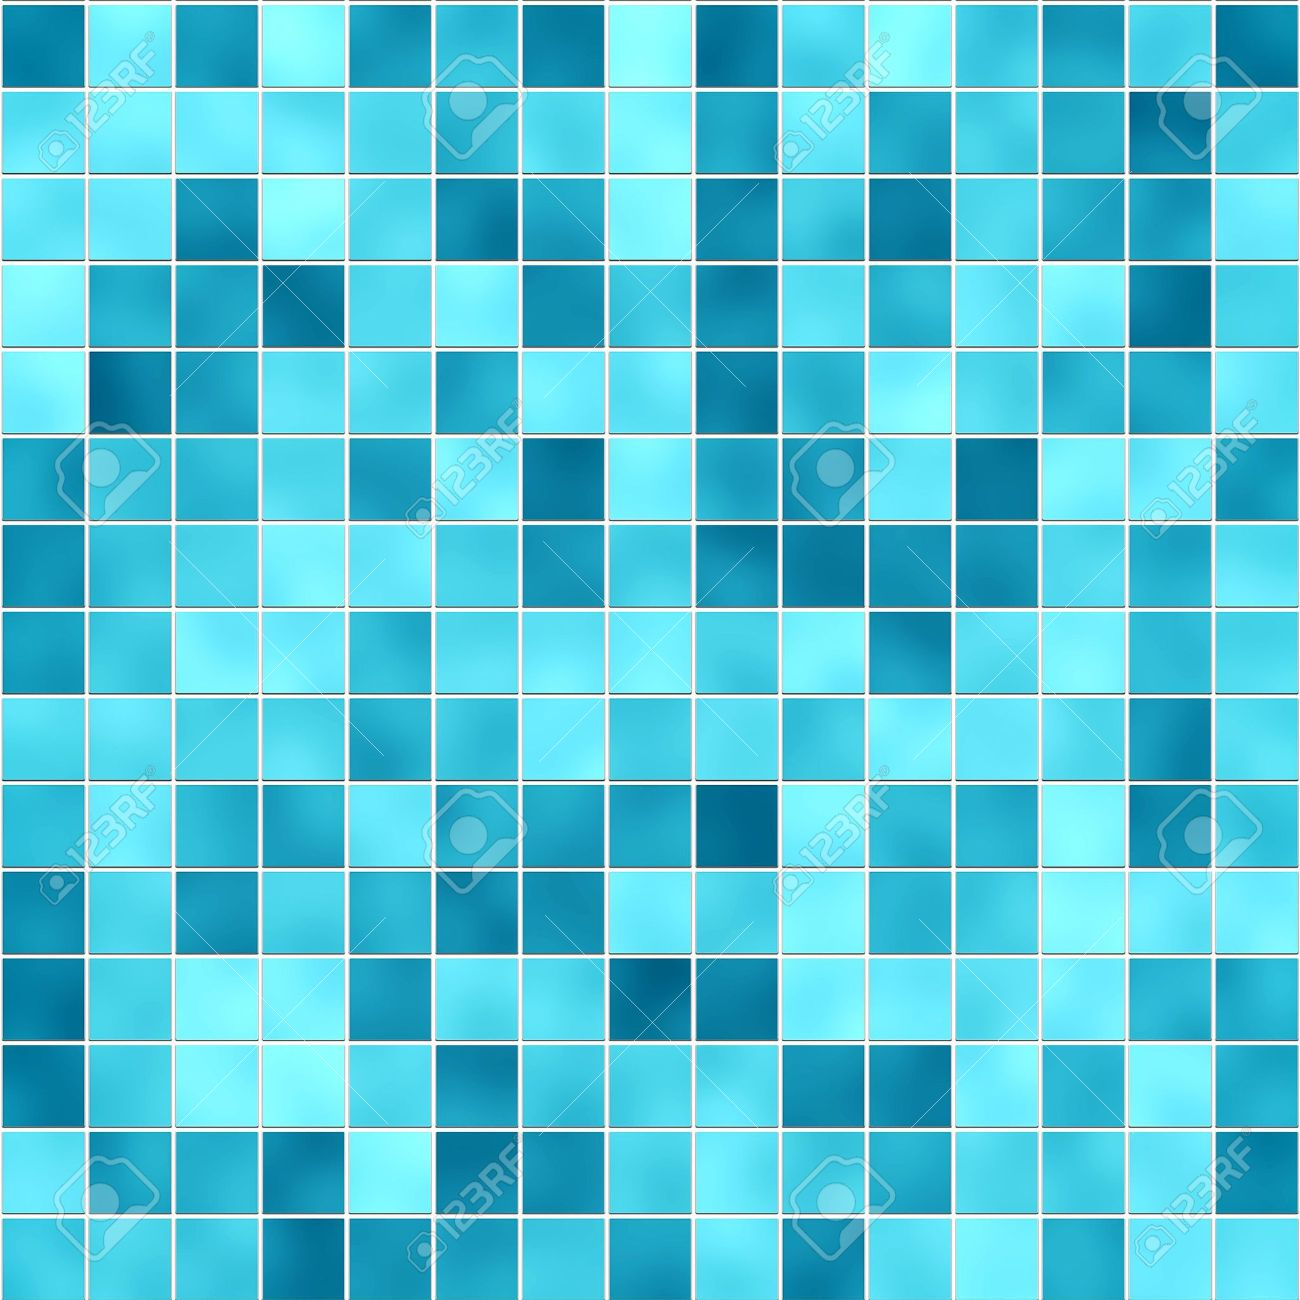 Small Tiles Texture In Different Shades Of Blue Stock Photo, Picture ...